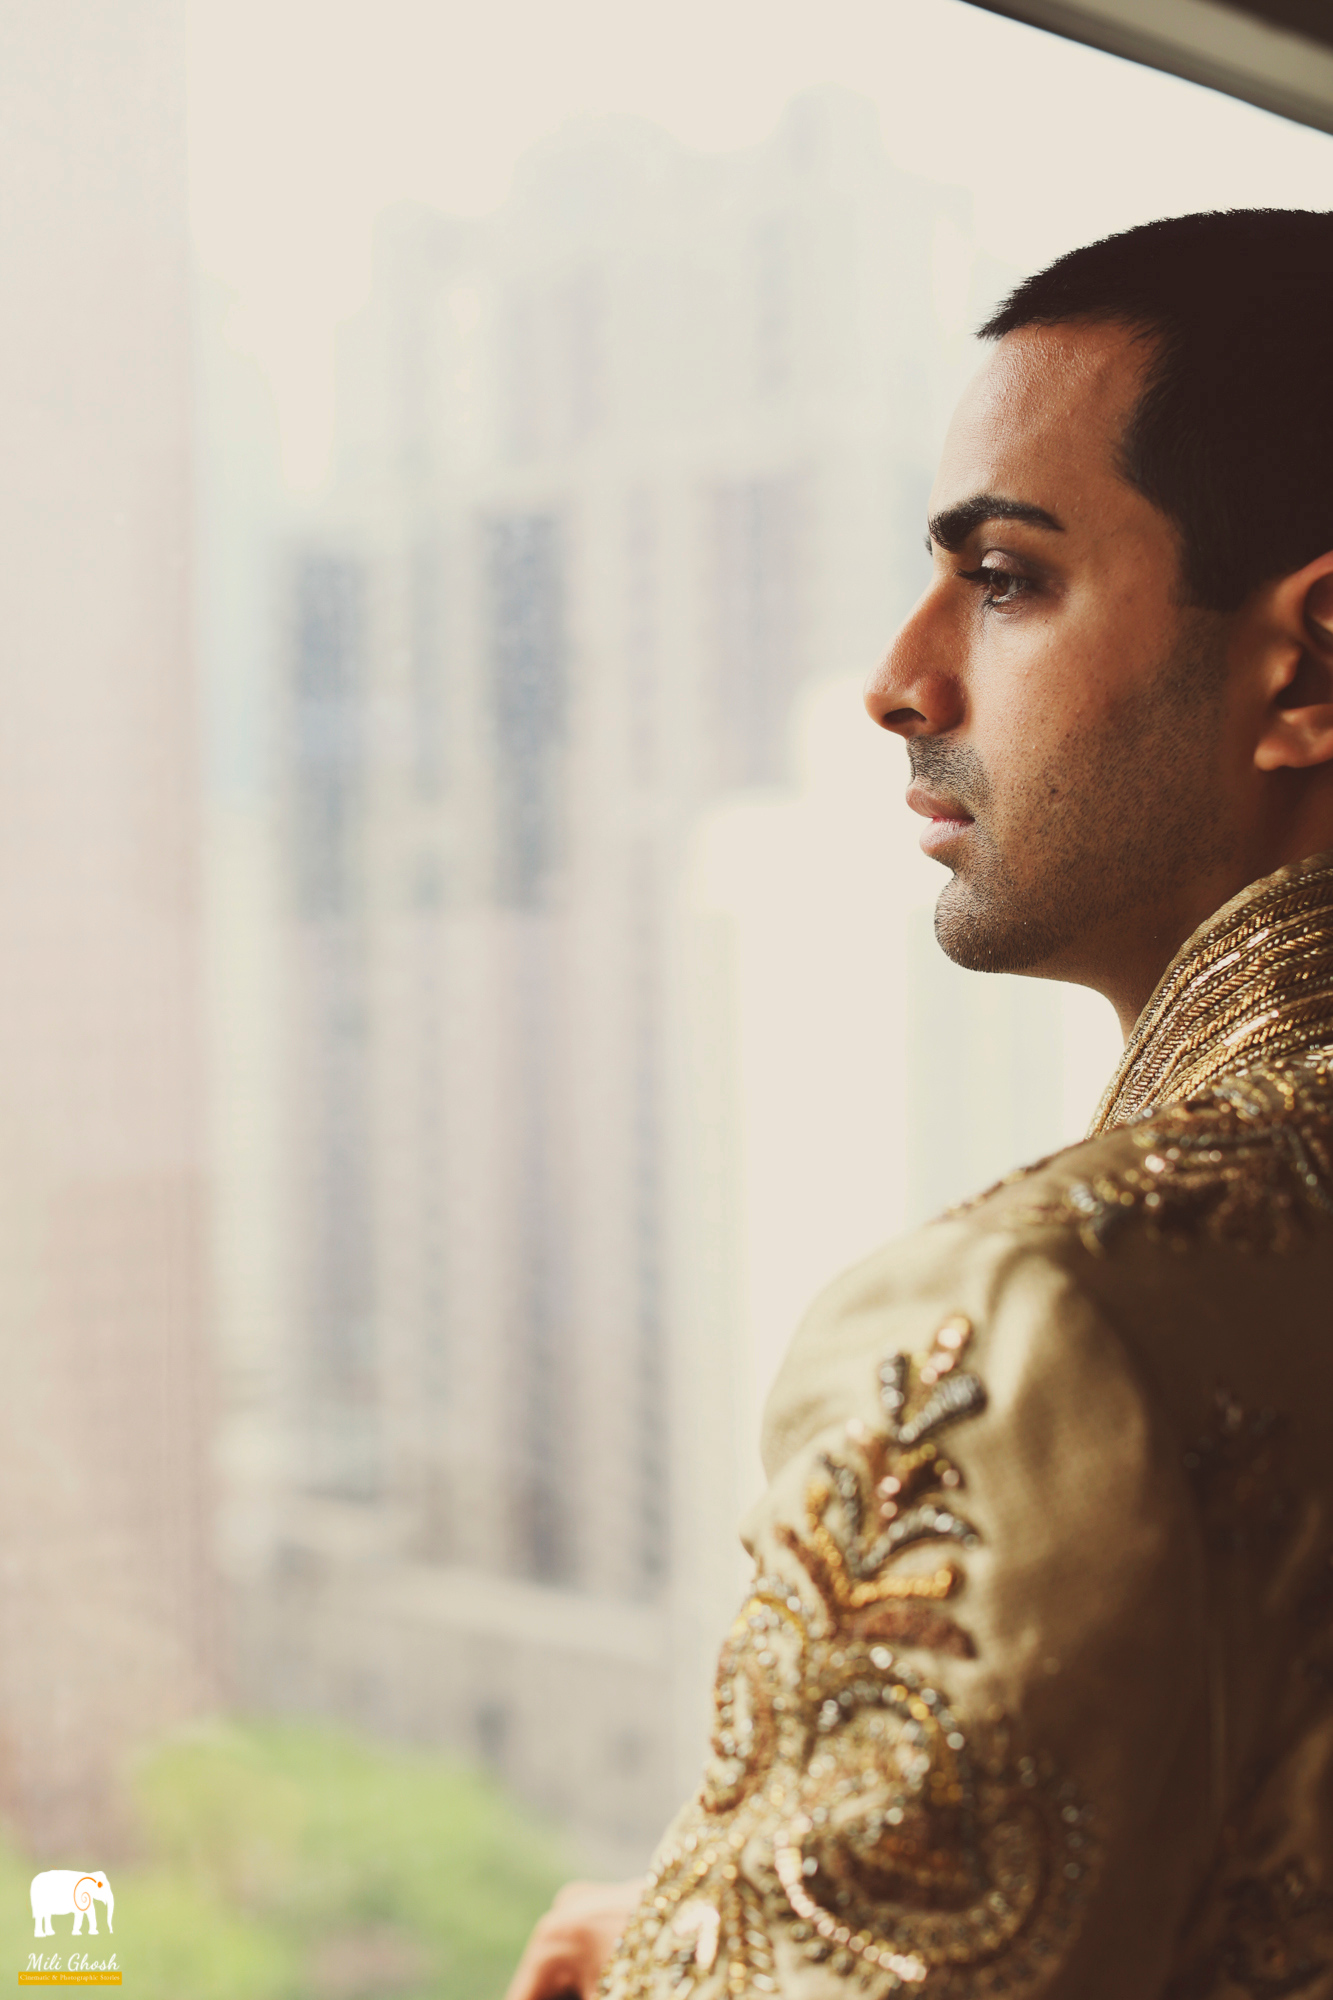 Copy of HANDSOME INDIAN GROOM LOOKING OUT WINDOW